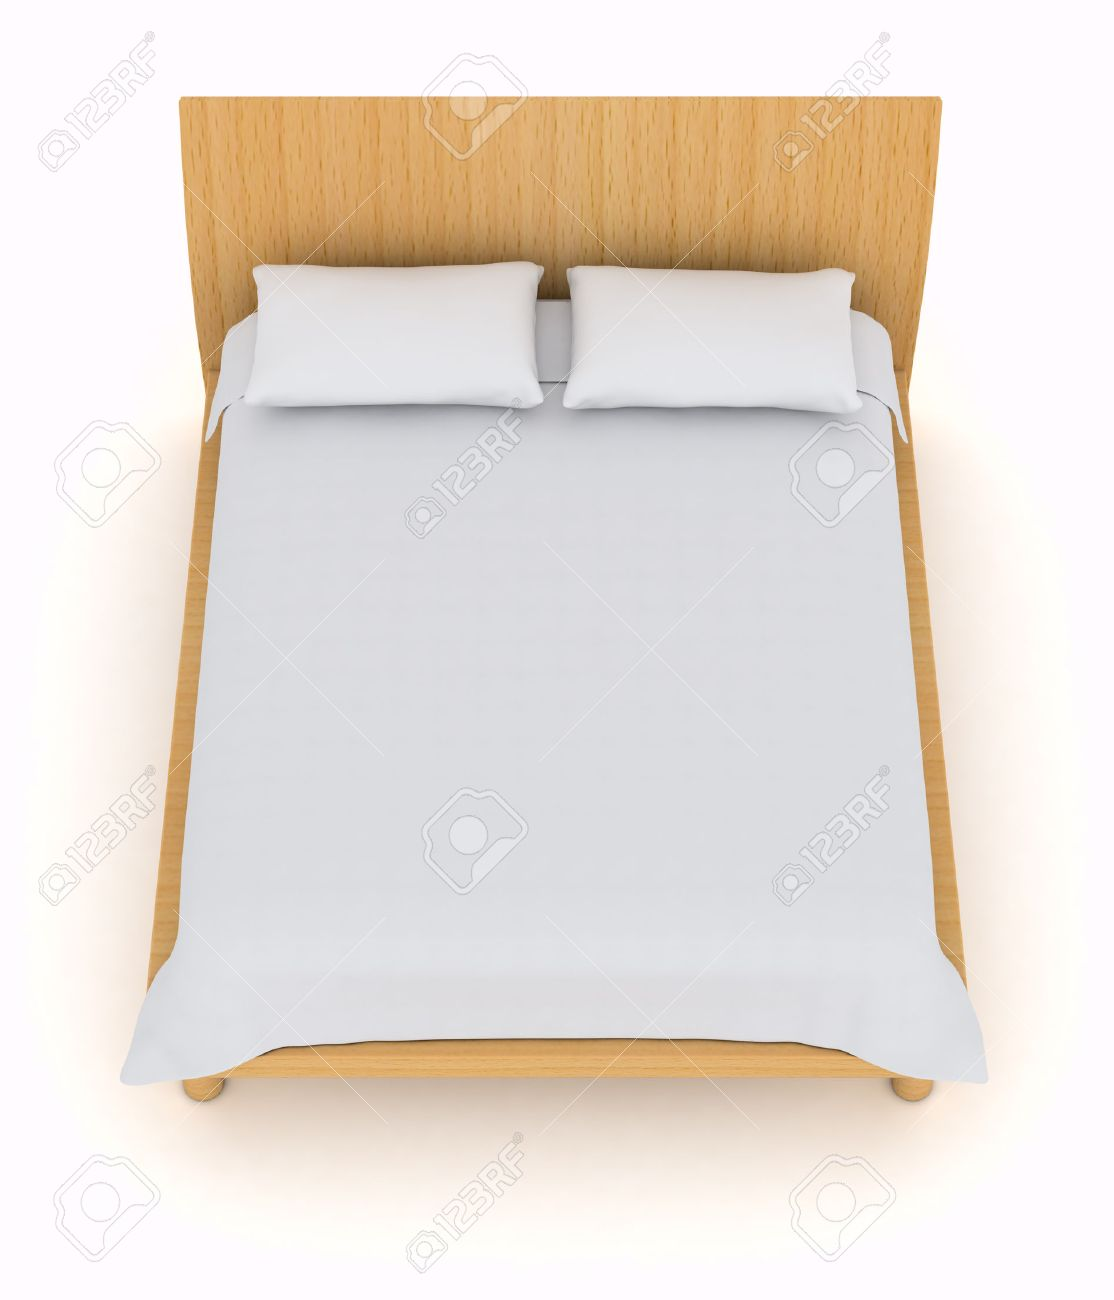 White bed top view - Top View Of A Double Bed With White Pillows And Blanket 3d Render Stock